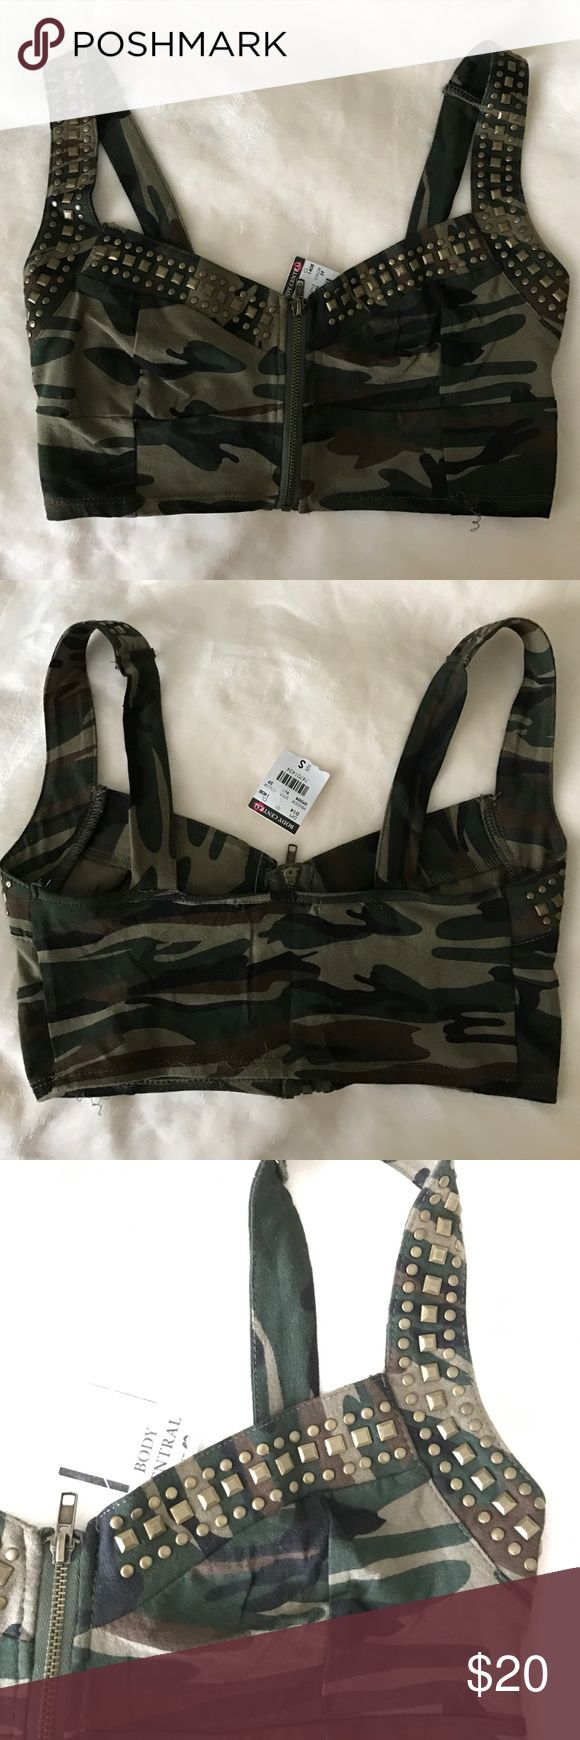 Camouflage Bustier Top Brand new never been worn. I was planning to wear it for a halloween costume as army girl but that didn't happen. Cute top for any regular occasion or for upcoming halloween! Frontal zipper and studs. Body Central Tops